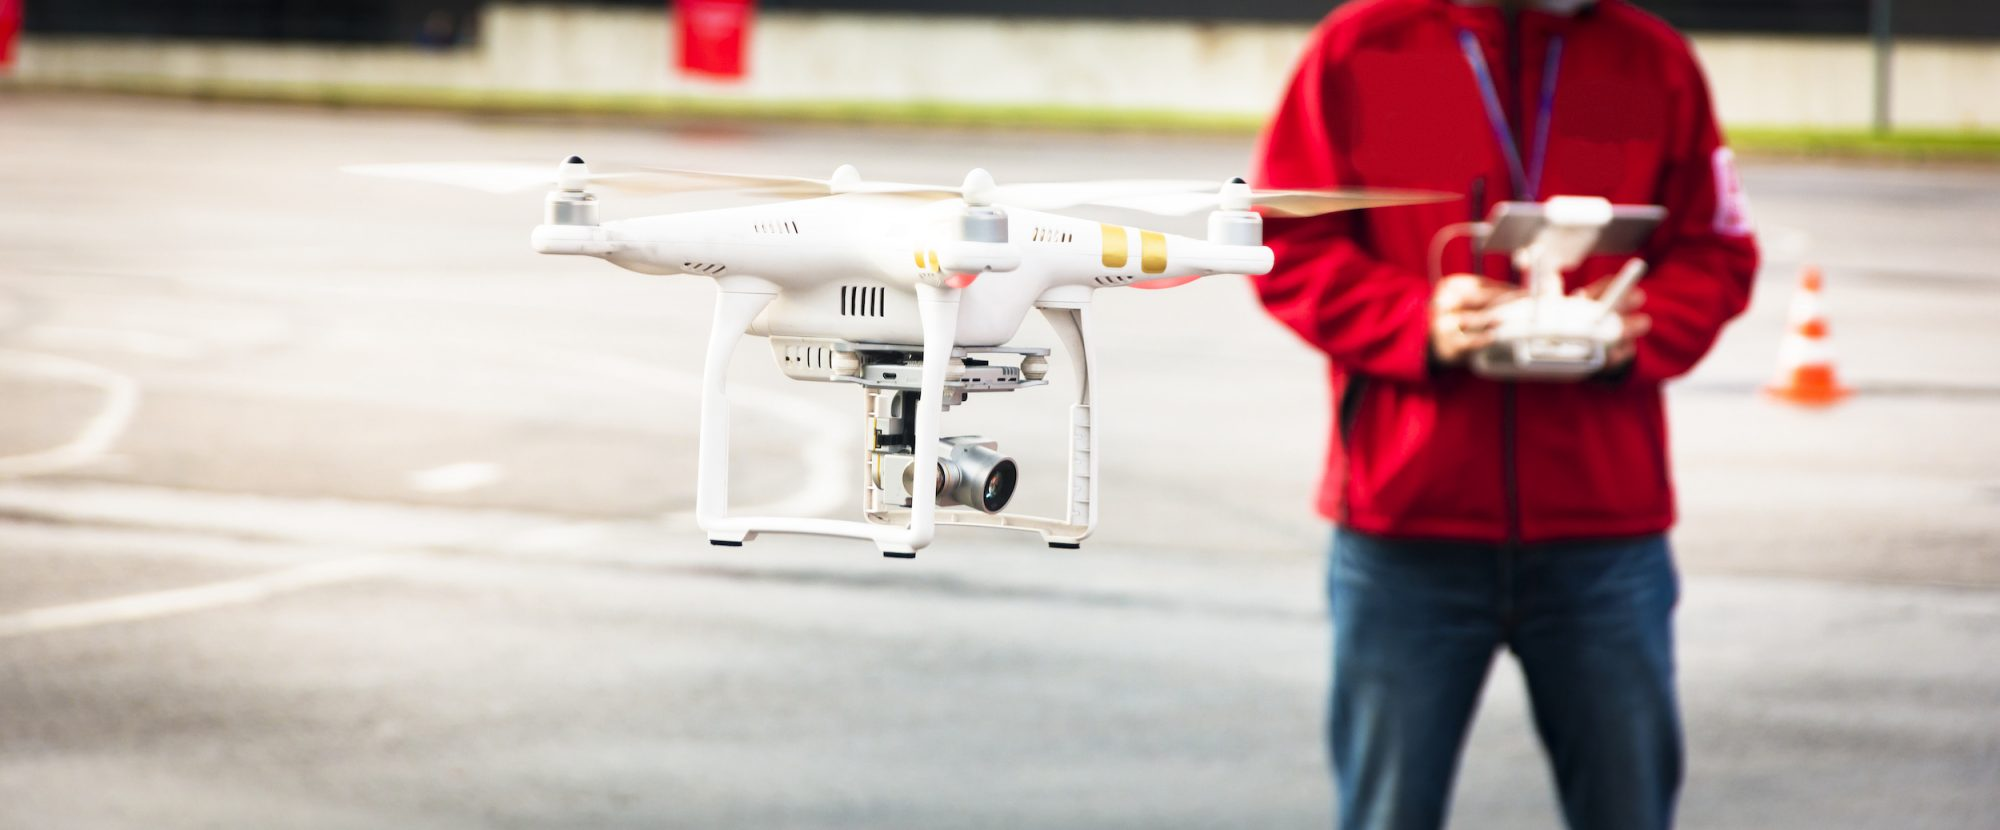 Fleet of 60 drones deployed after Covid outbreak in China